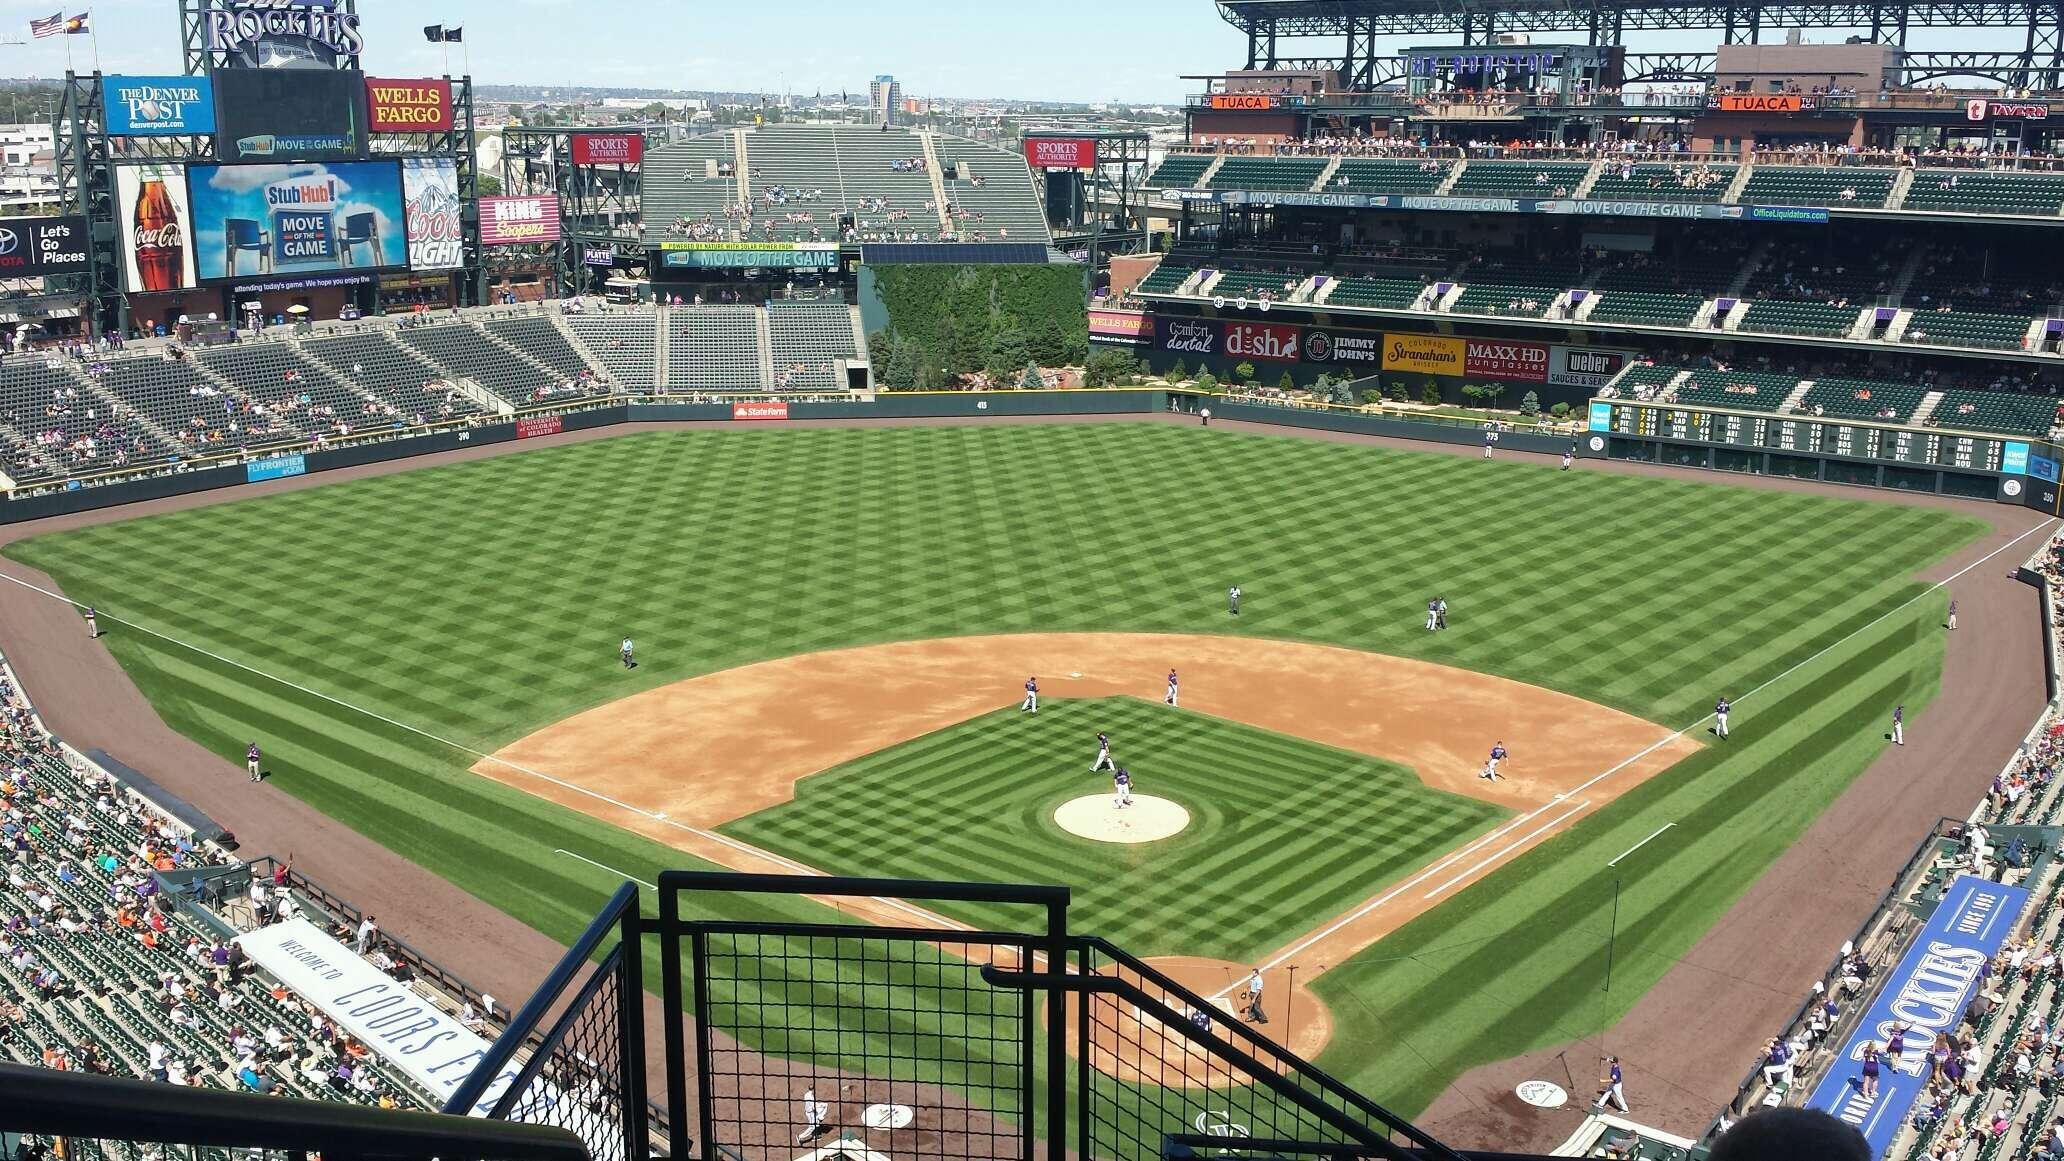 Coors Field Section U331 Row 13 Seat 18